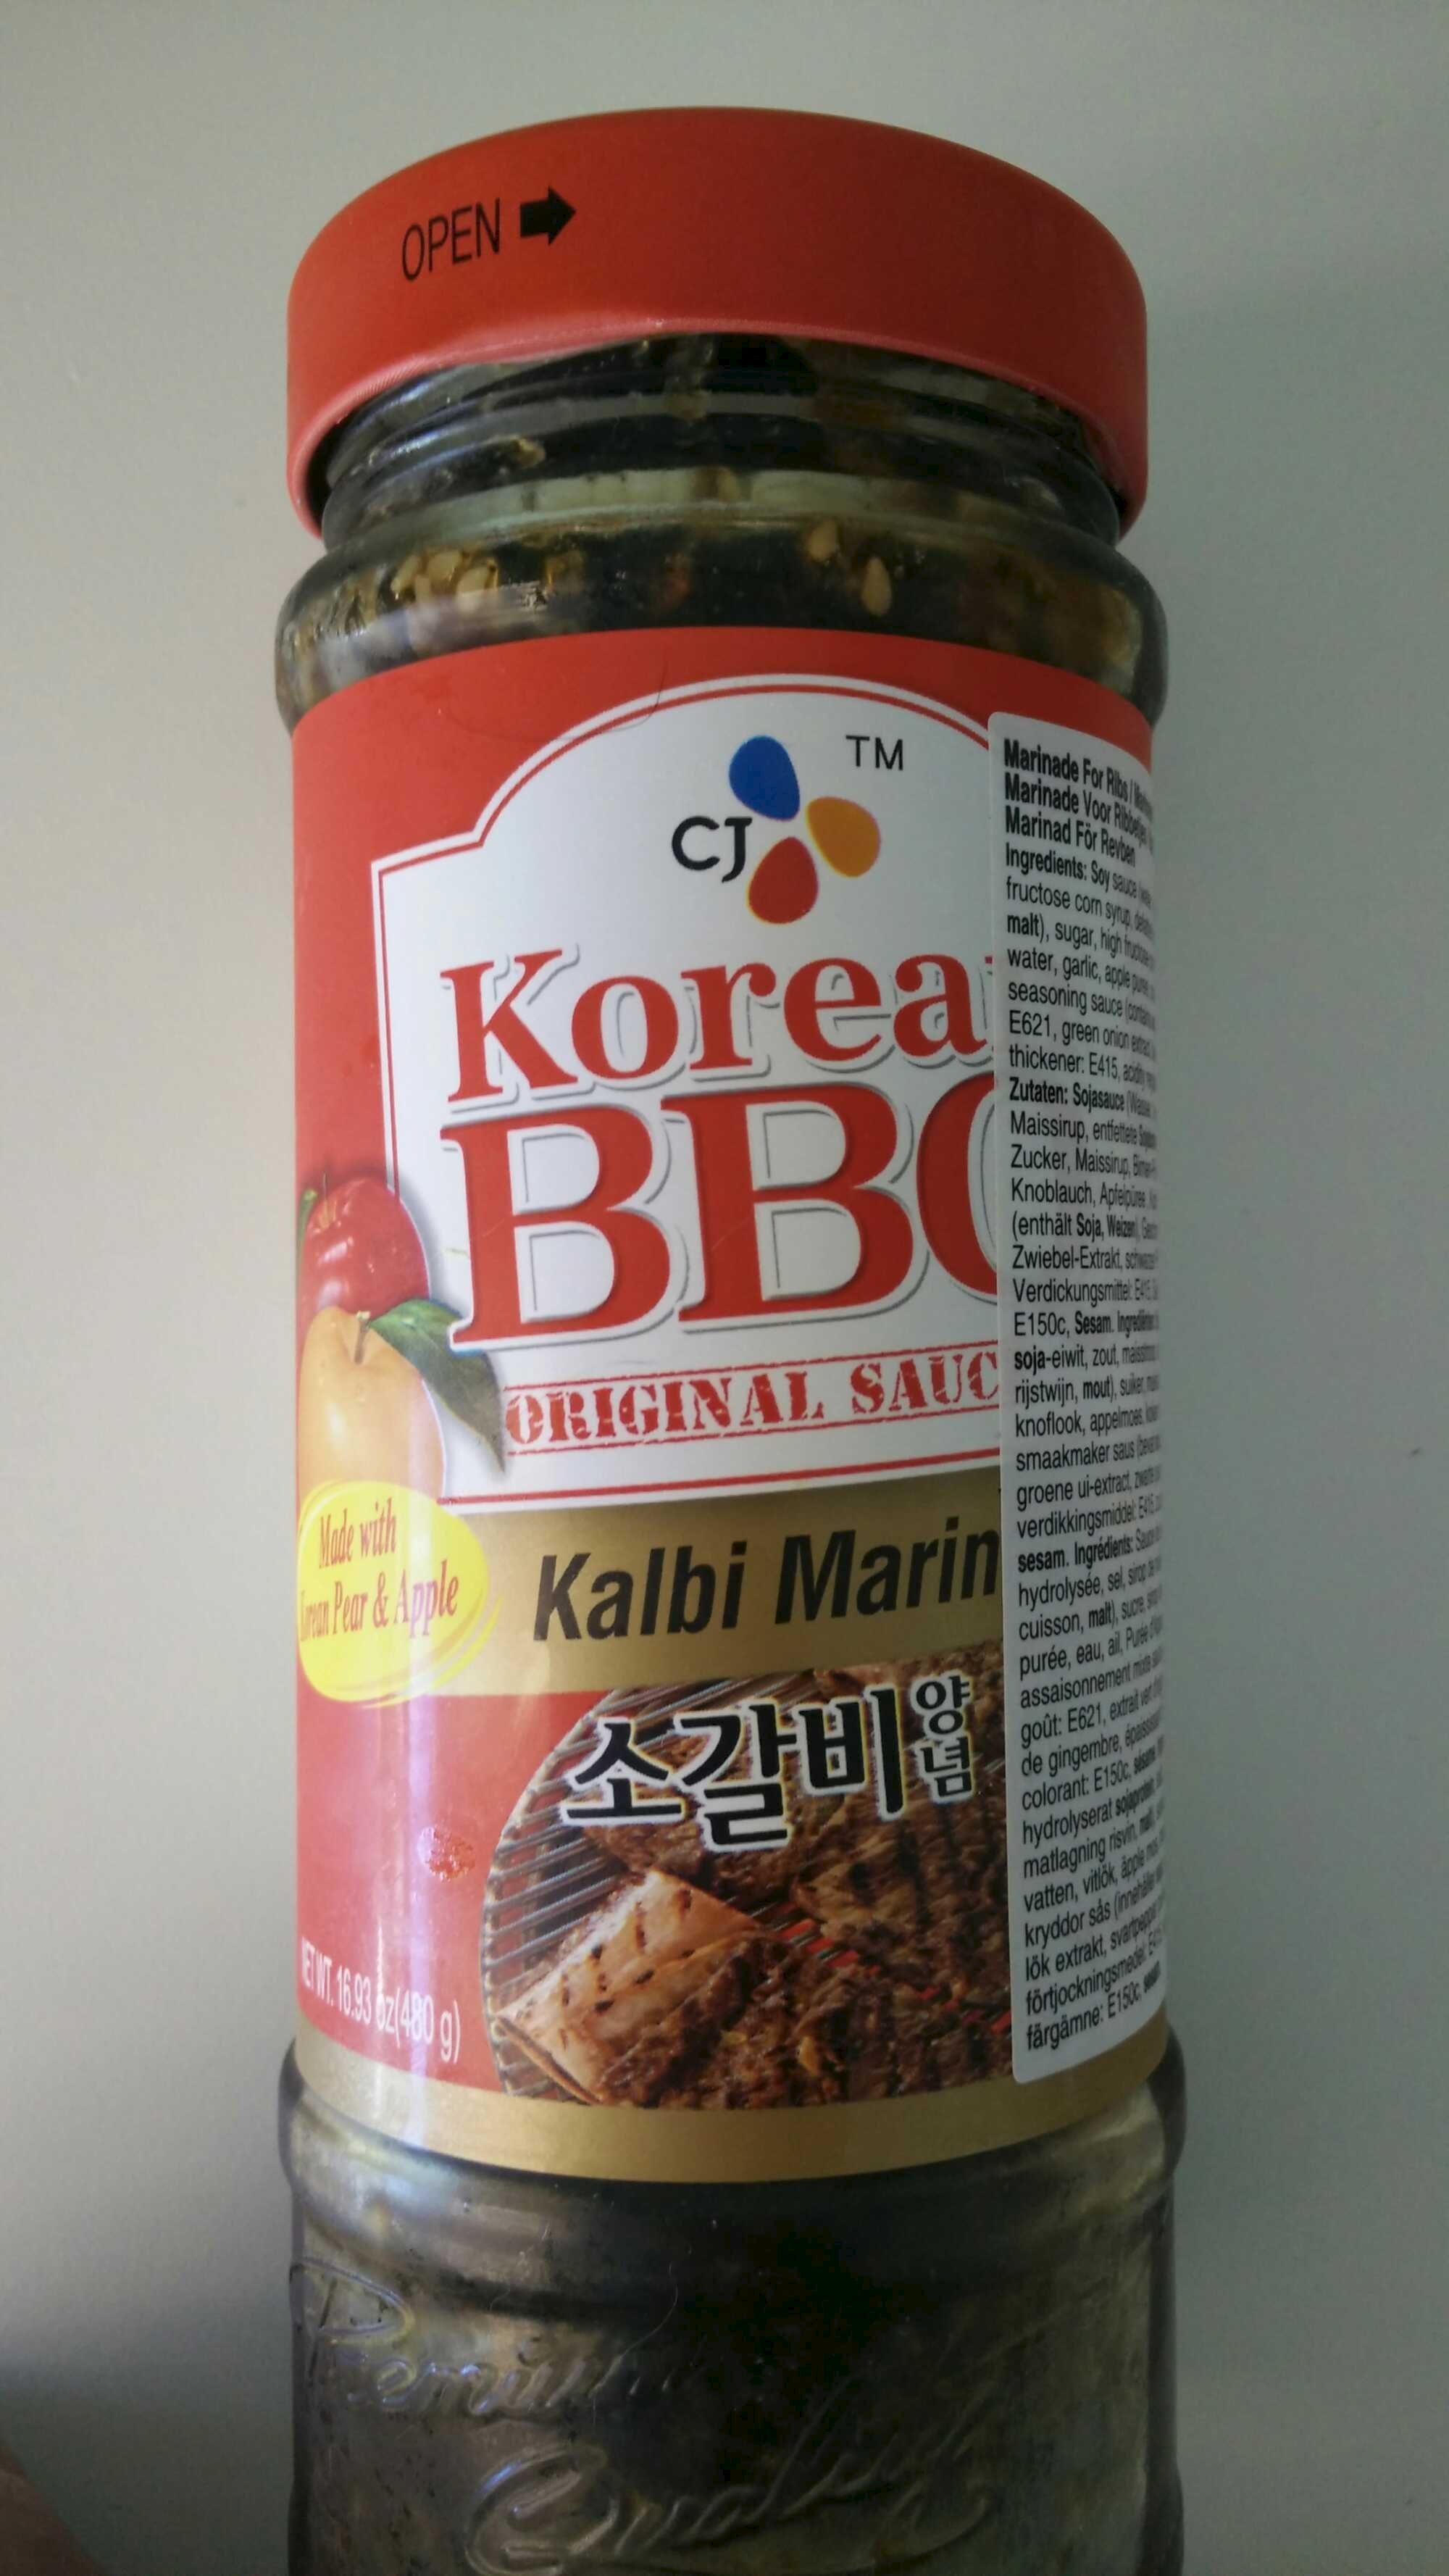 Korean BBQ Original Sauce - Kalbi Marinade - CJ - 480 g